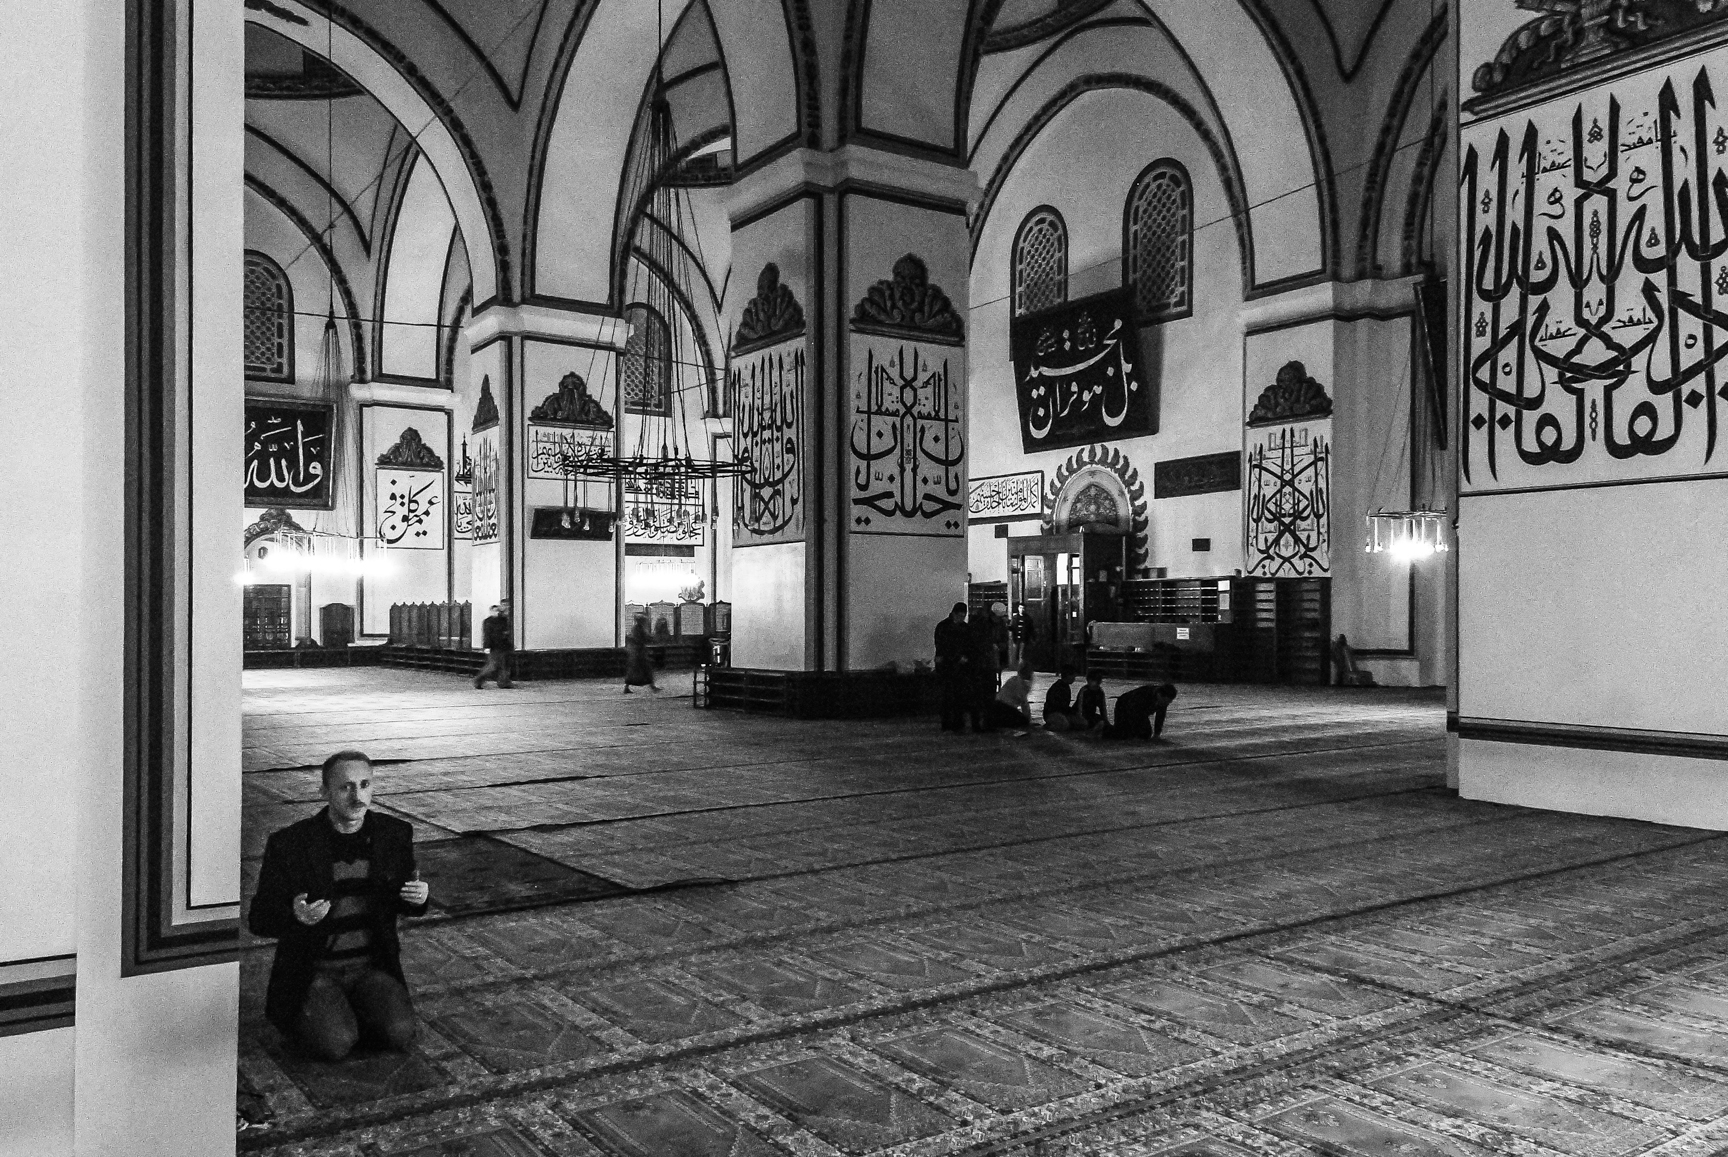 Ulu Cami. Bursa / Turkey